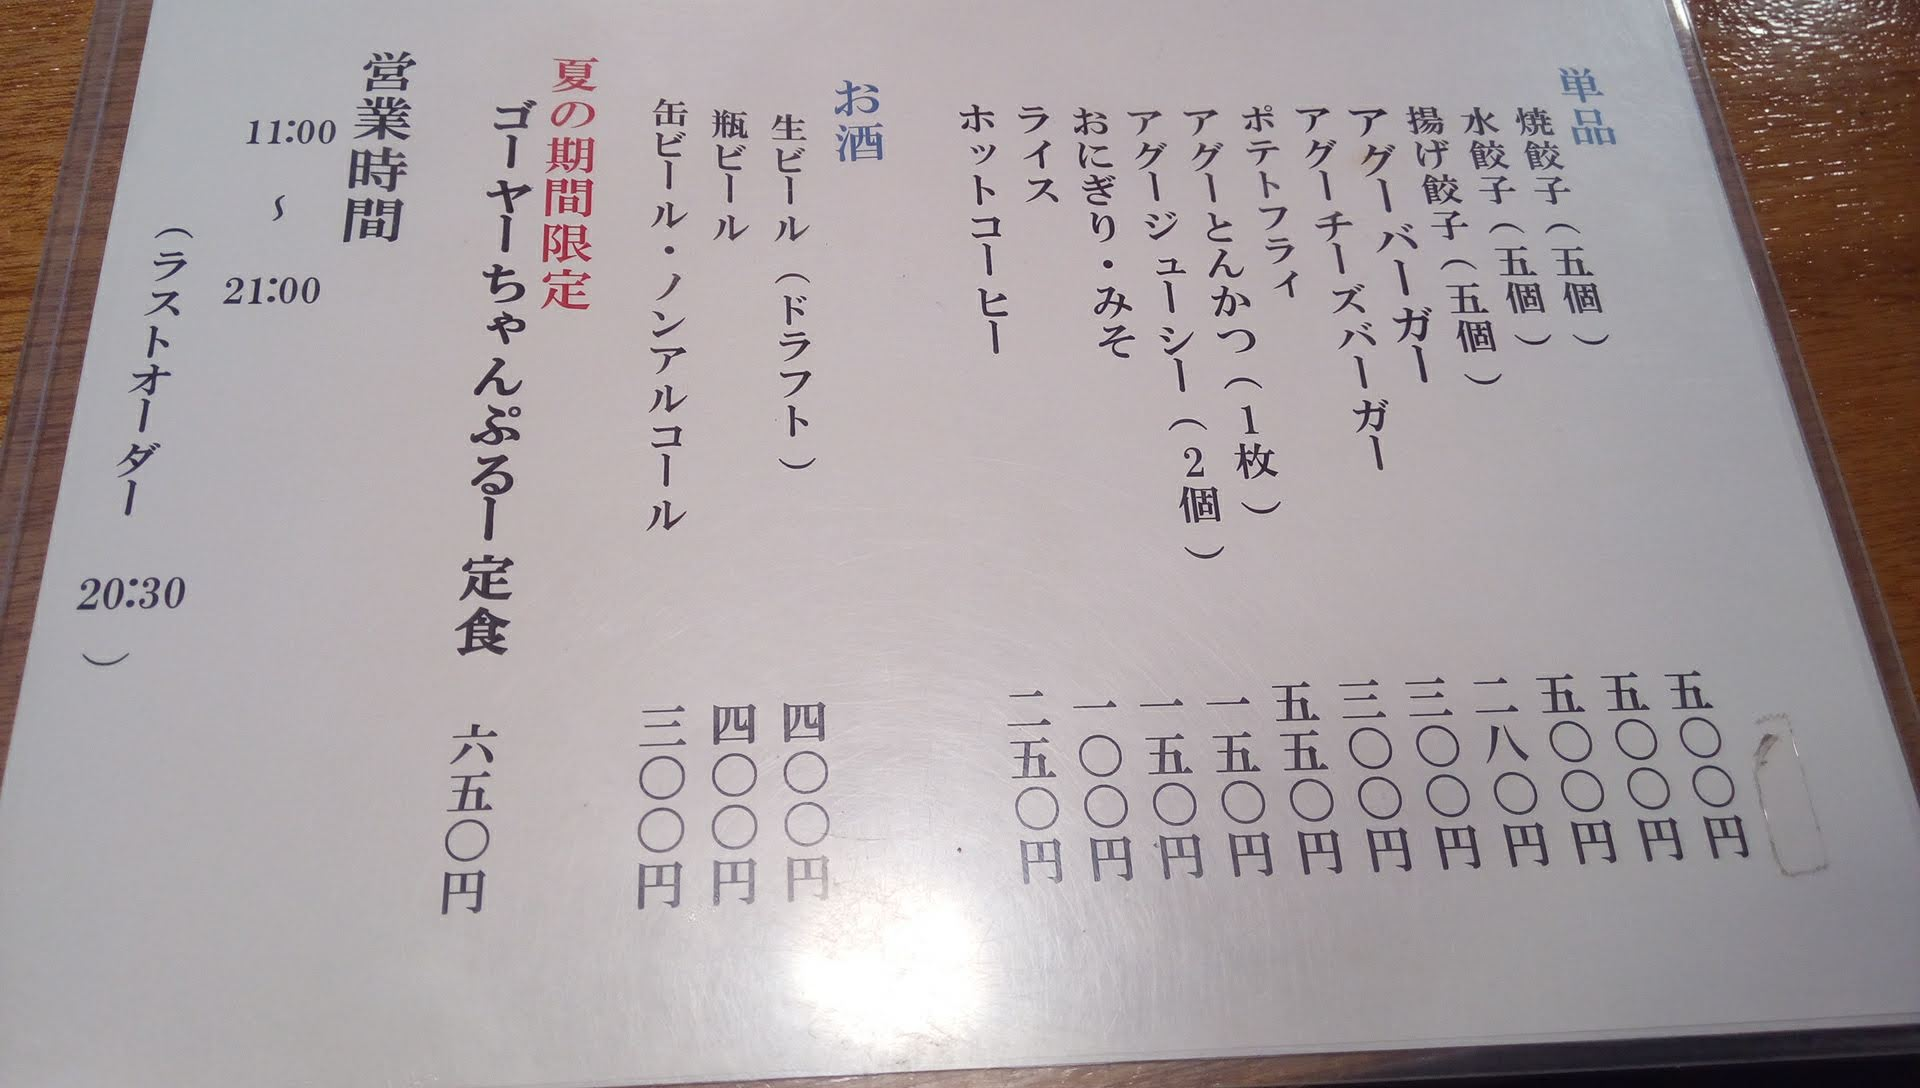 The menu of Nangokutei 2